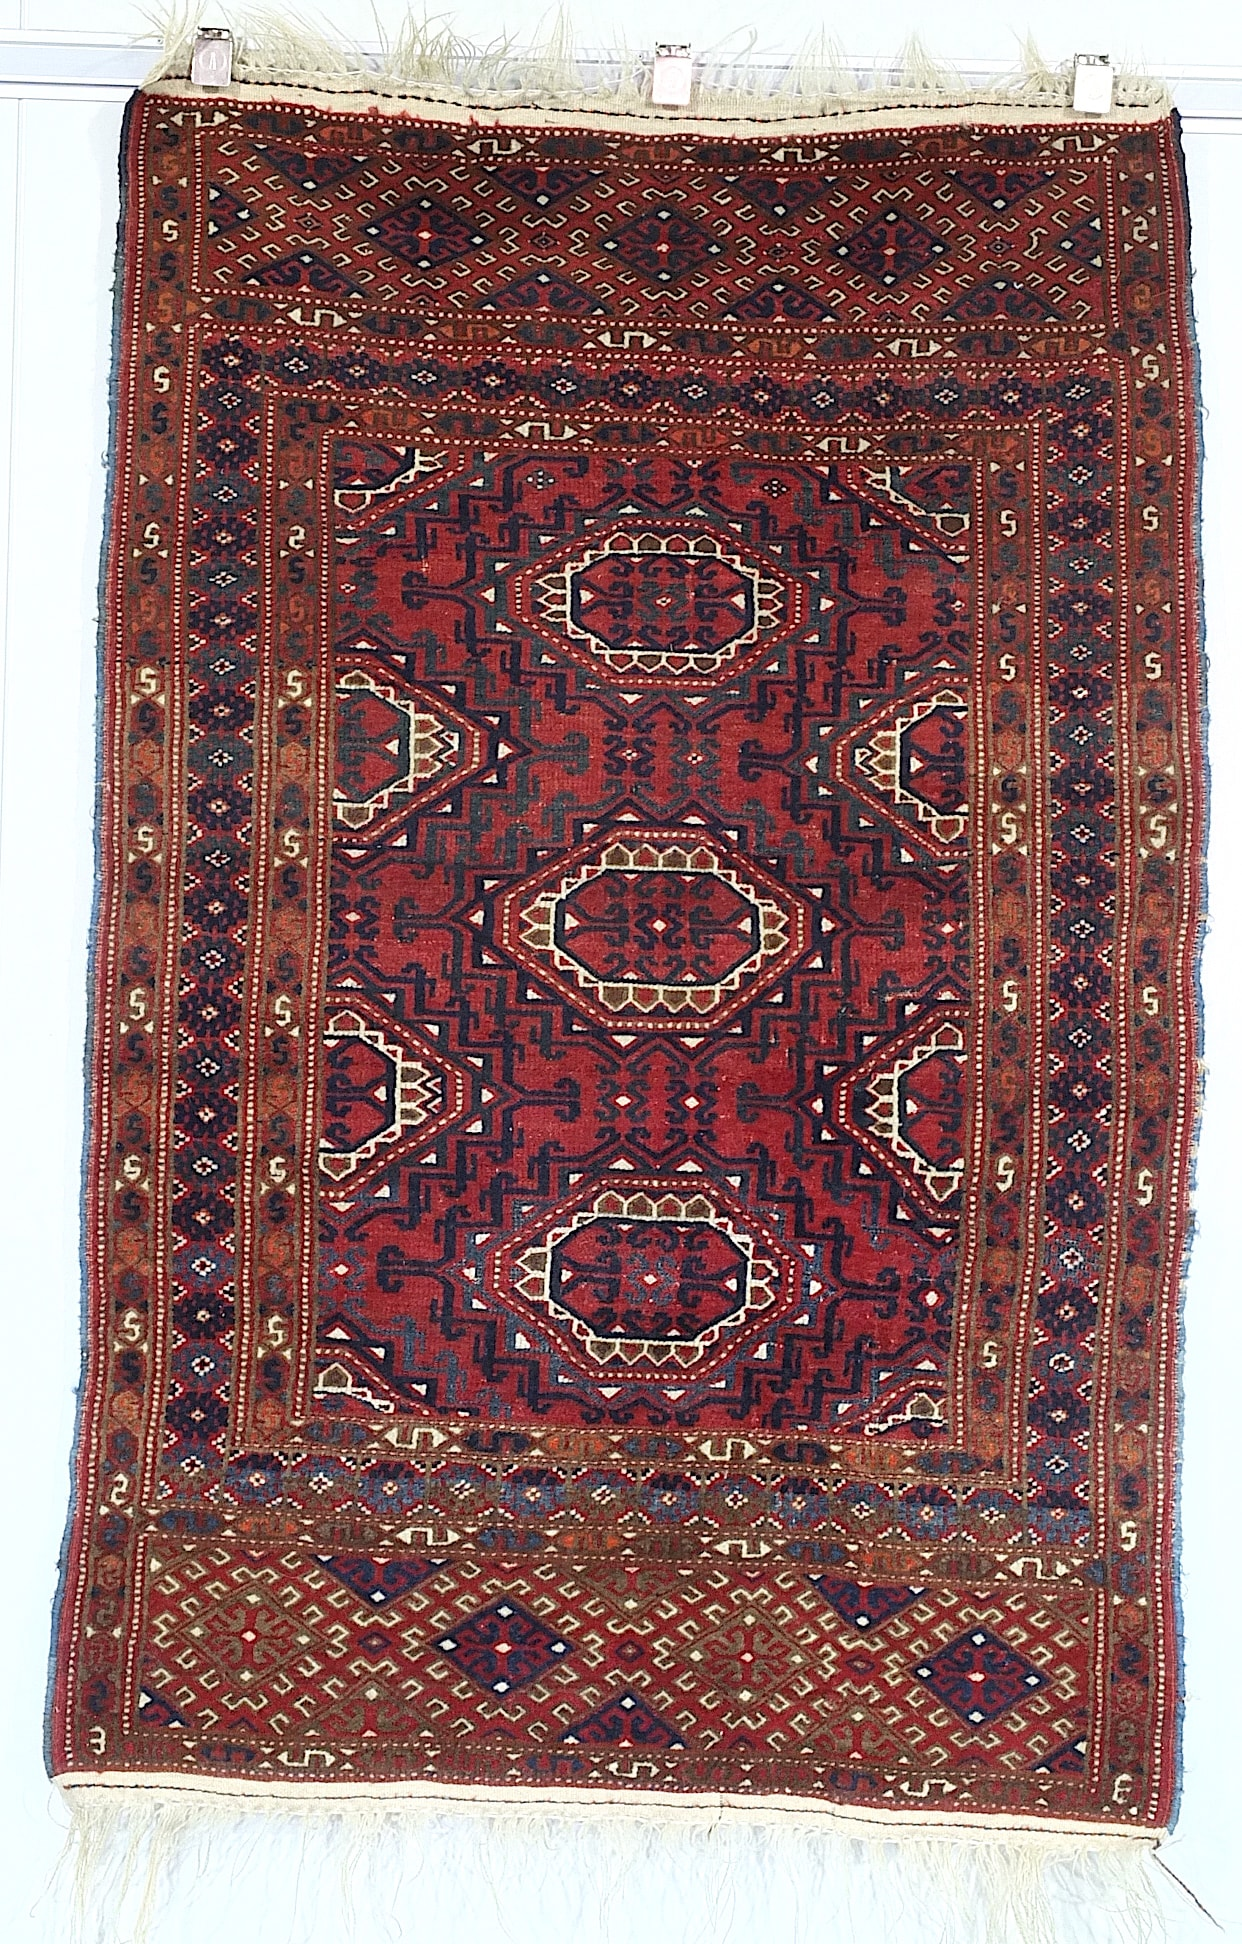 'Turkmen Salor Gul Hand Knotted Wool Pile Rug, Early to Mid 20th Century'